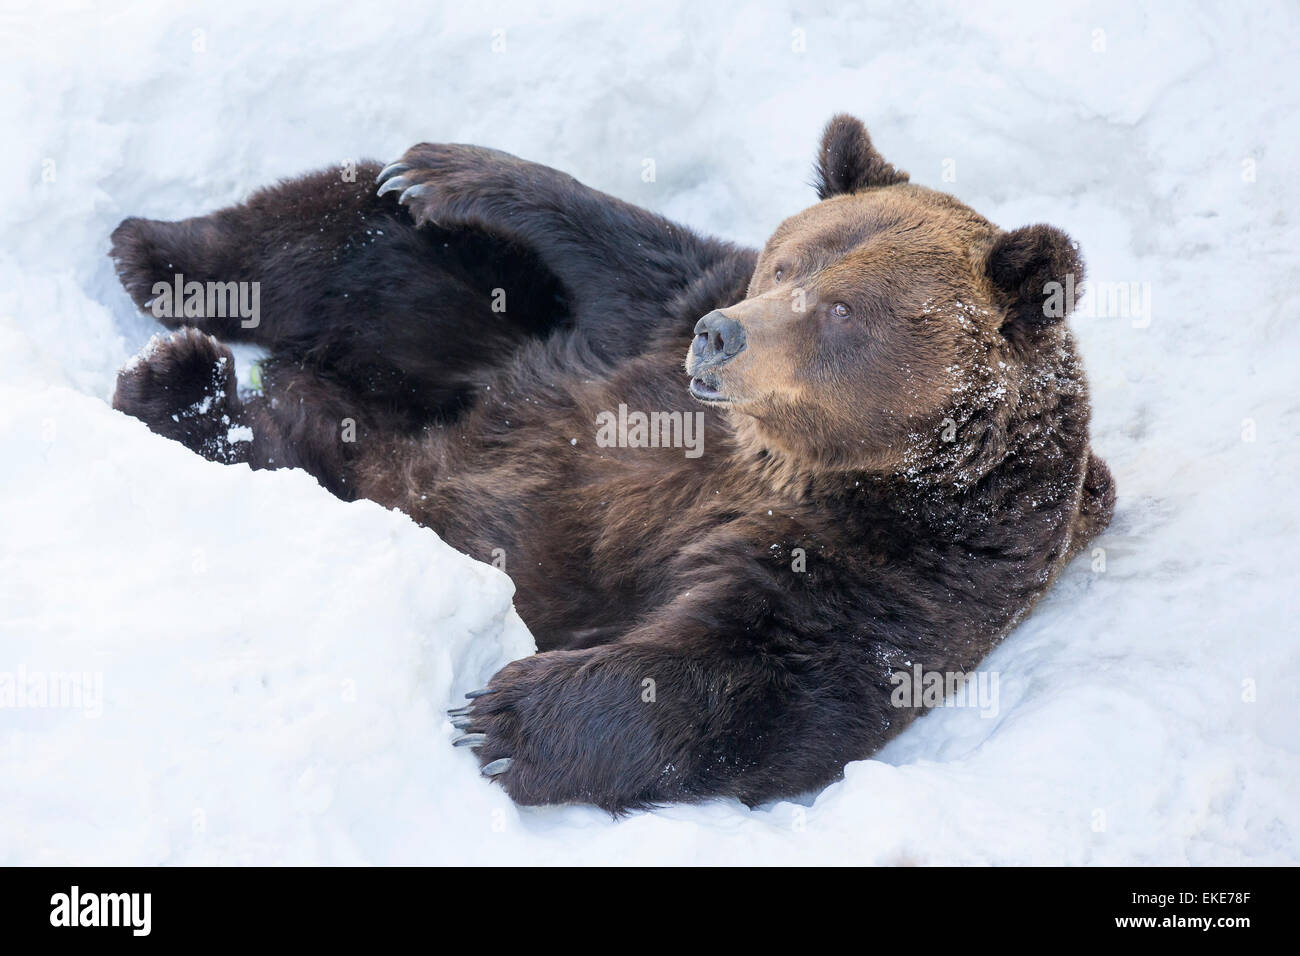 Grizzly bear (Ursus arctos horribilis) laying in the snow after emerging from a hibernation through the winter - Stock Image